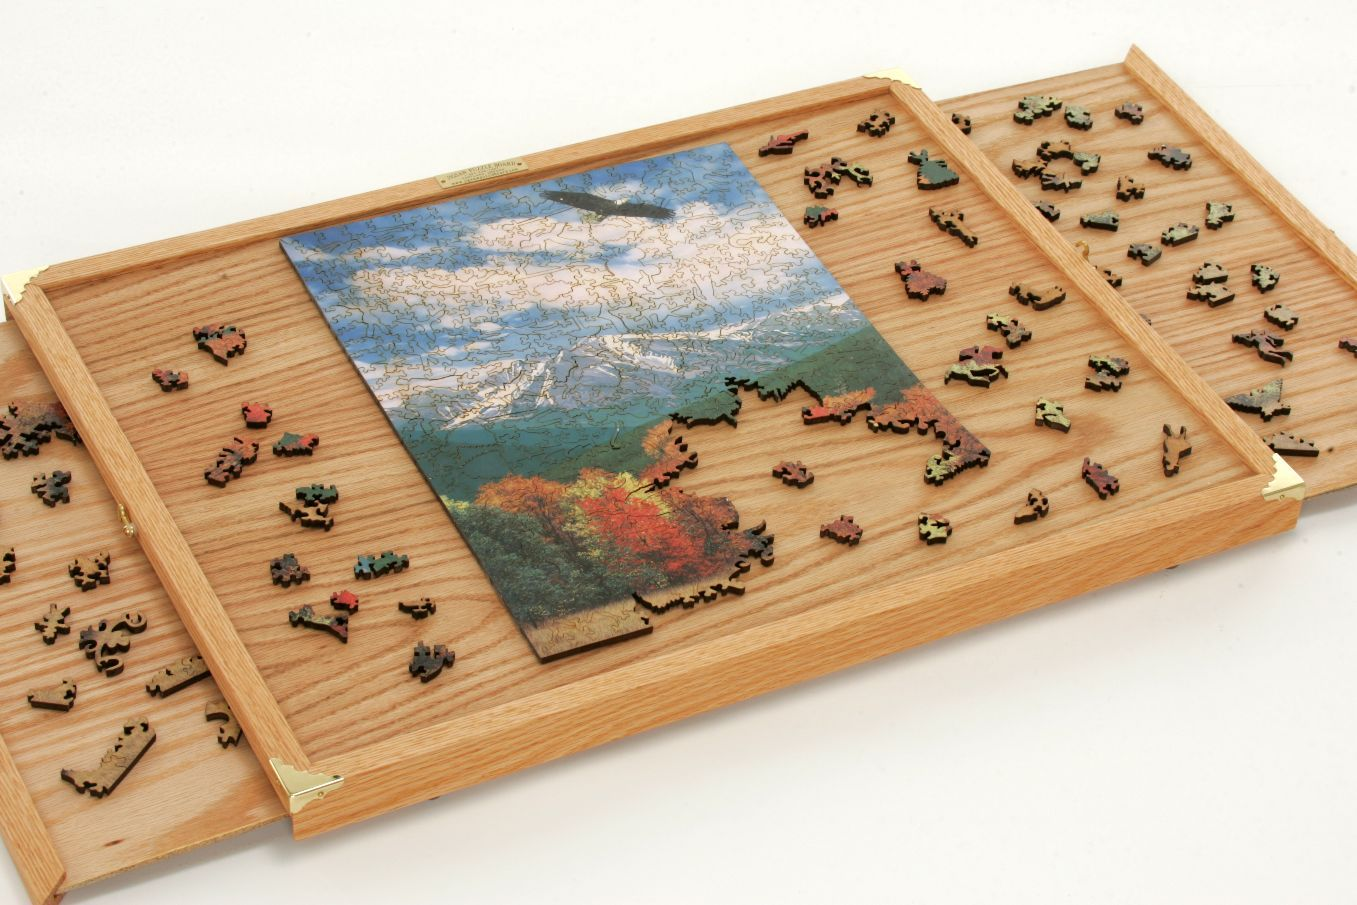 Puzzle Board Craft Ideas Jigsaw Puzzle Table Puzzle